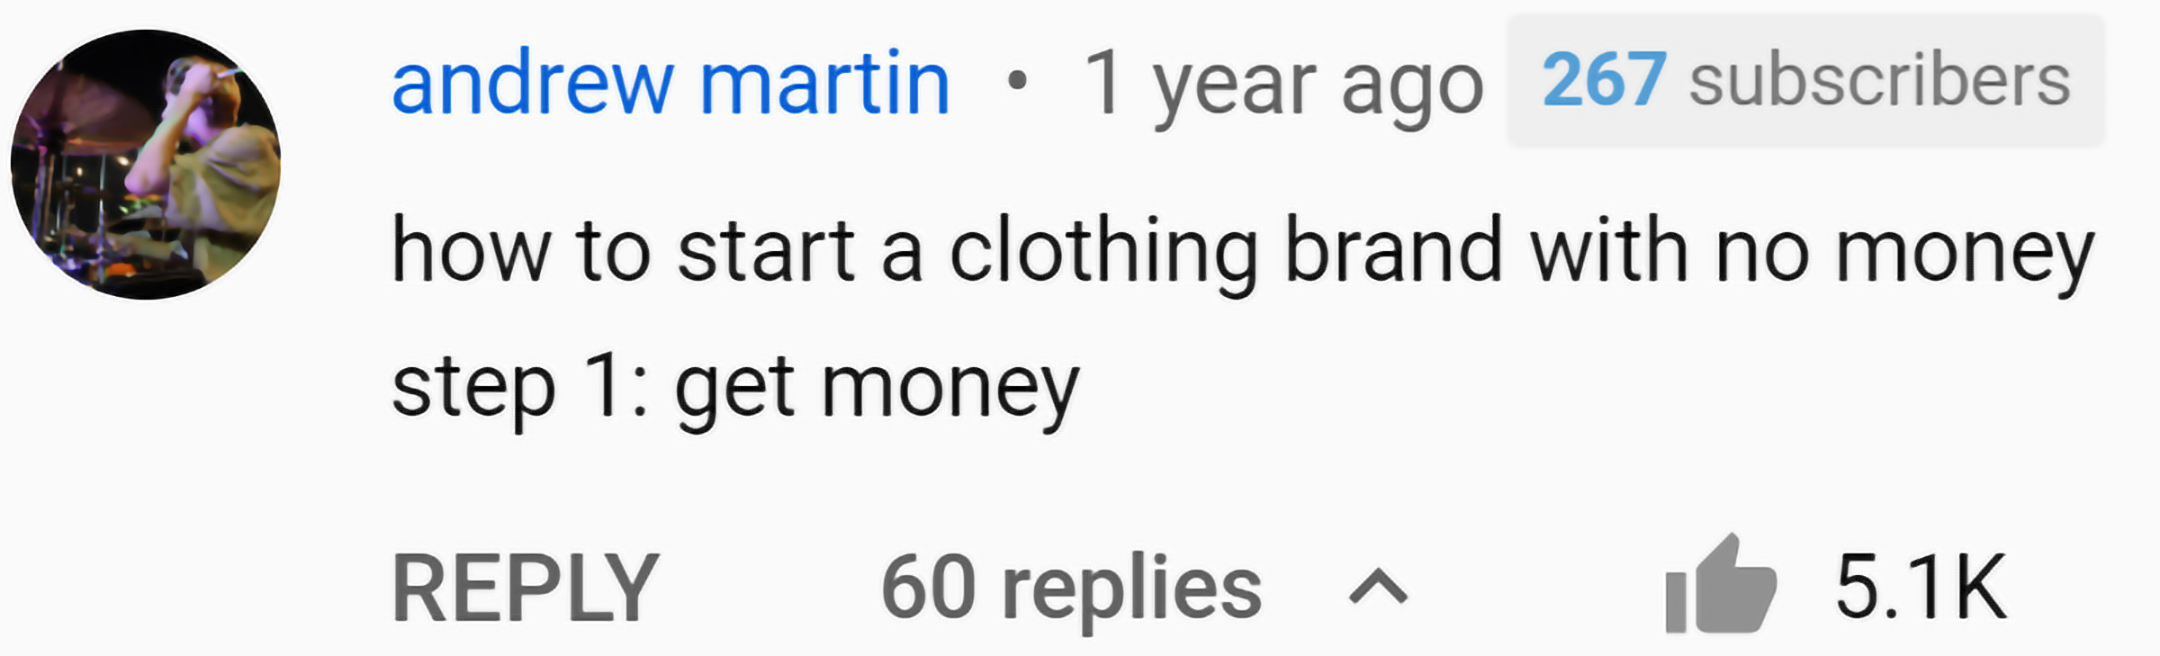 Image of comment from YouTube Video asking how to start your brand with no money, step 1: get money